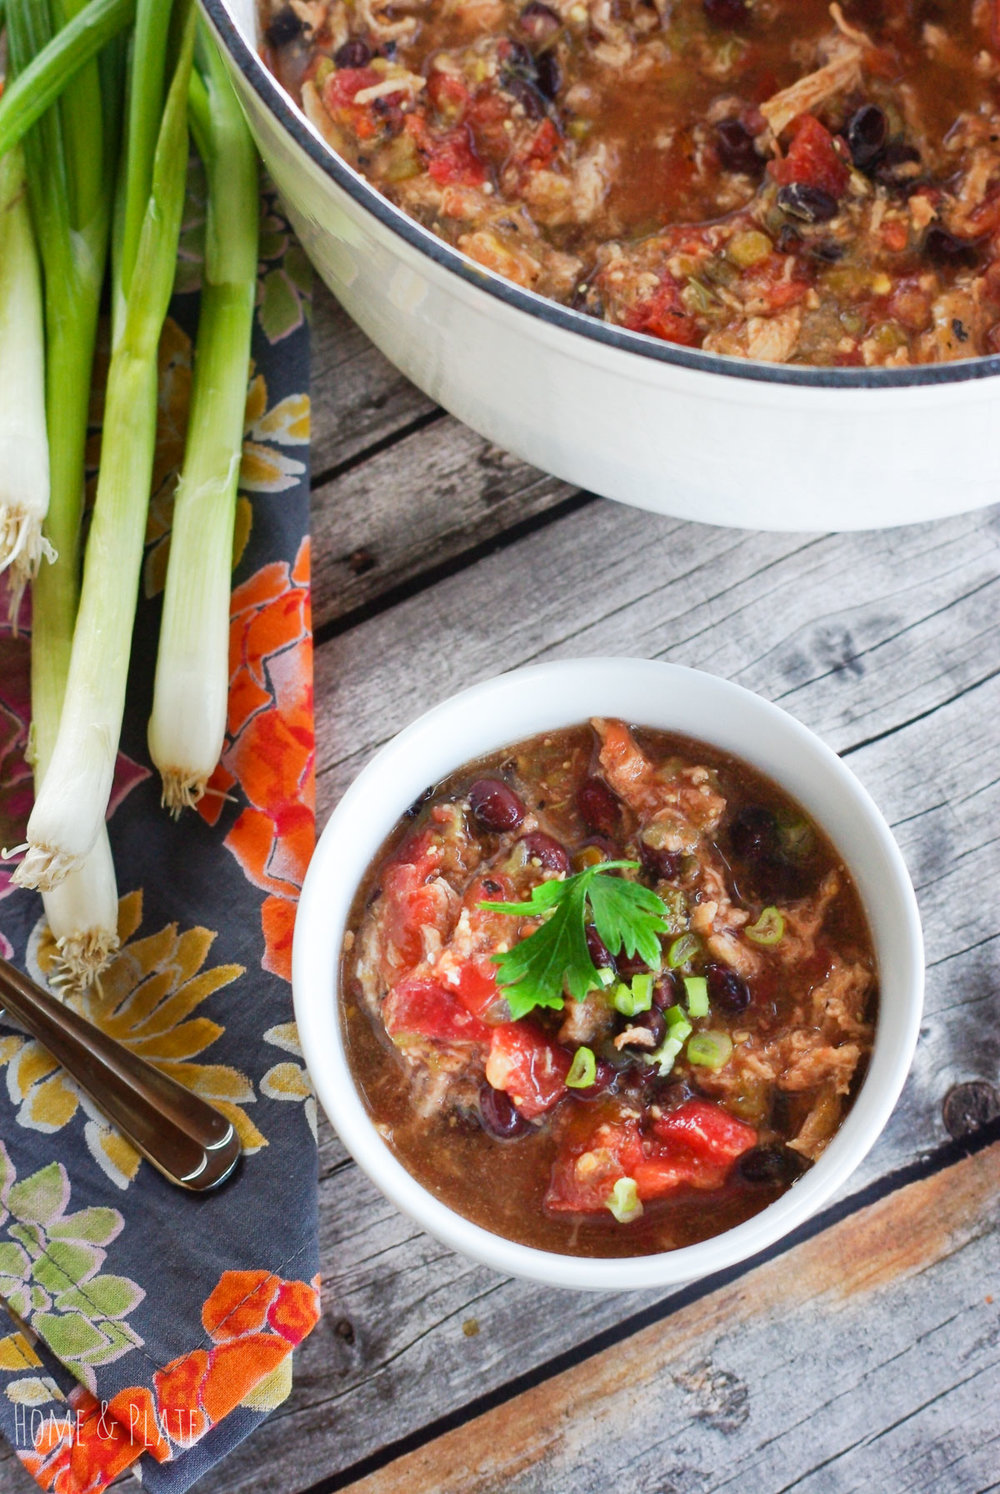 Tex-Mex Pork Stew | www.homeandplate.com | Enjoy a simple and quick soup that packs a little heat to warm you up this winter.